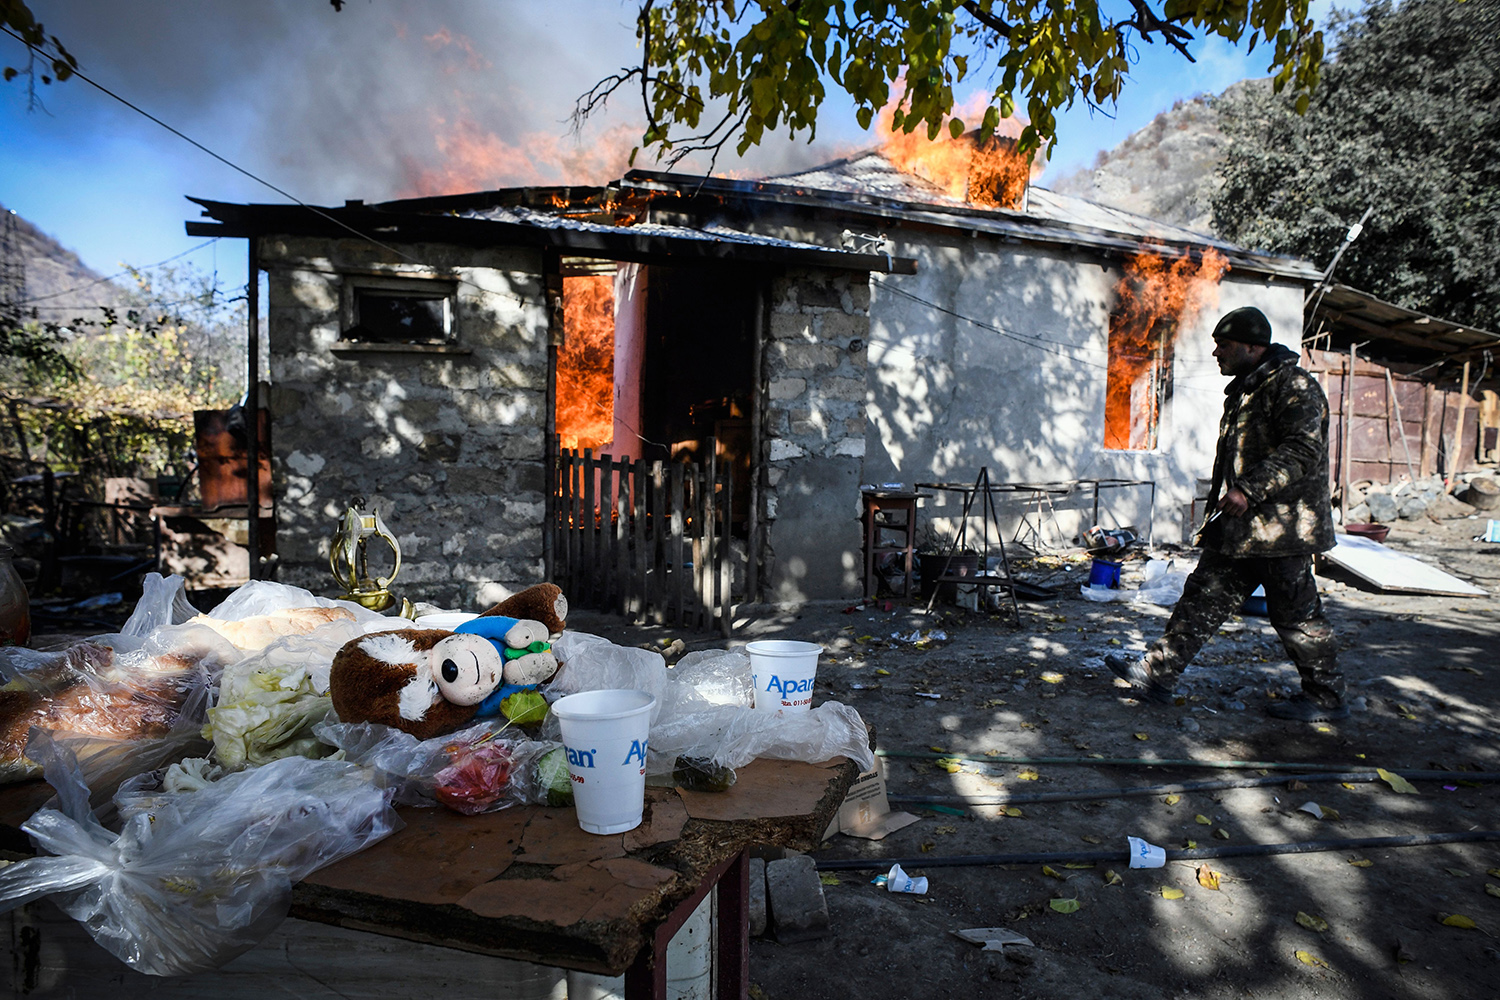 A man walks past a house as it burns in the village of Charektar, outside of Kalbajar, on Nov. 14 during the military conflict between Armenia and Azerbaijan over the breakaway region of Nagorno-Karabakh. Villagers in Nagorno-Karabakh set their houses on fire before fleeing to Armenia ahead of a deadline to hand over parts of the territory to Azerbaijan as part of a peace agreement. ALEXANDER NEMENOV/AFP via Getty Images